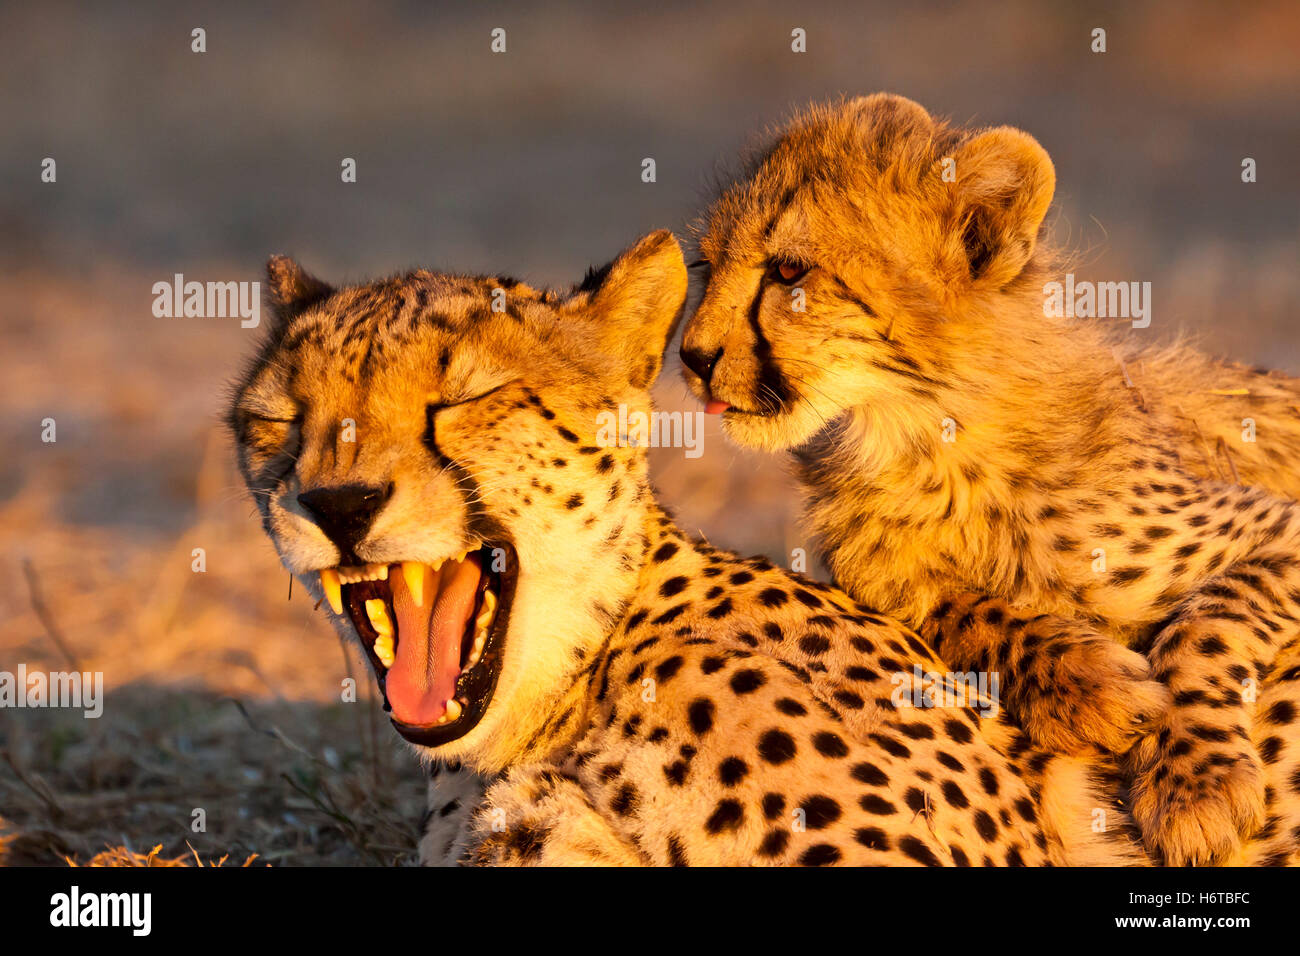 young cheetah (acinonyx jubatus) cheetah mother in abendlich - Stock Image